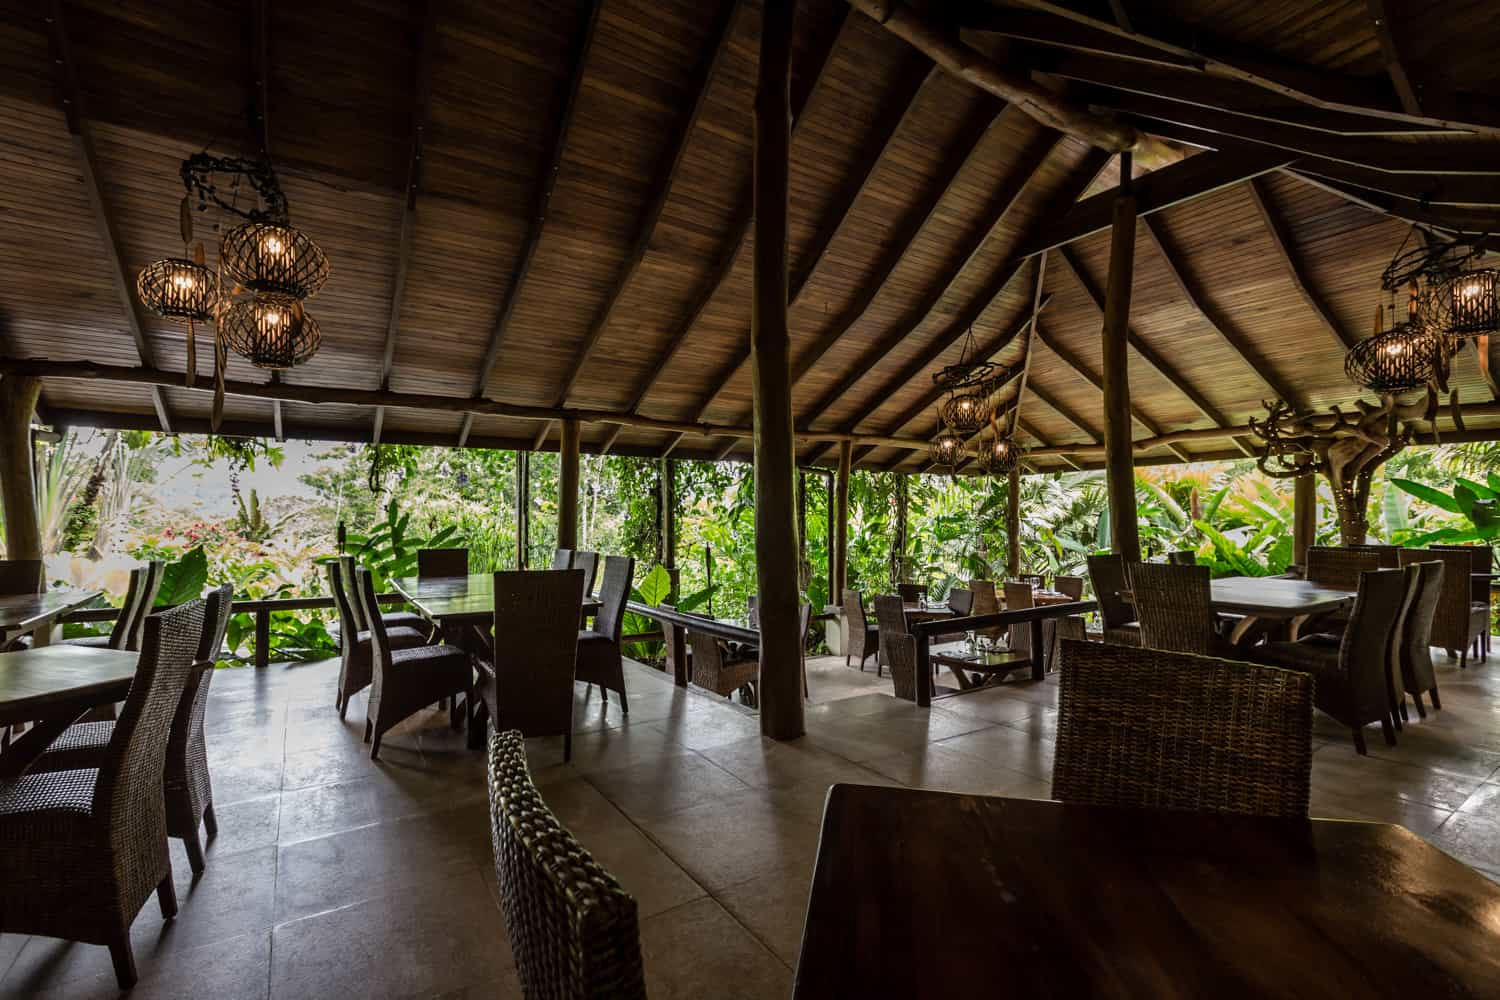 Main dining area for wedding party at Lost Iguana Resort & Spa in La Fortuna.